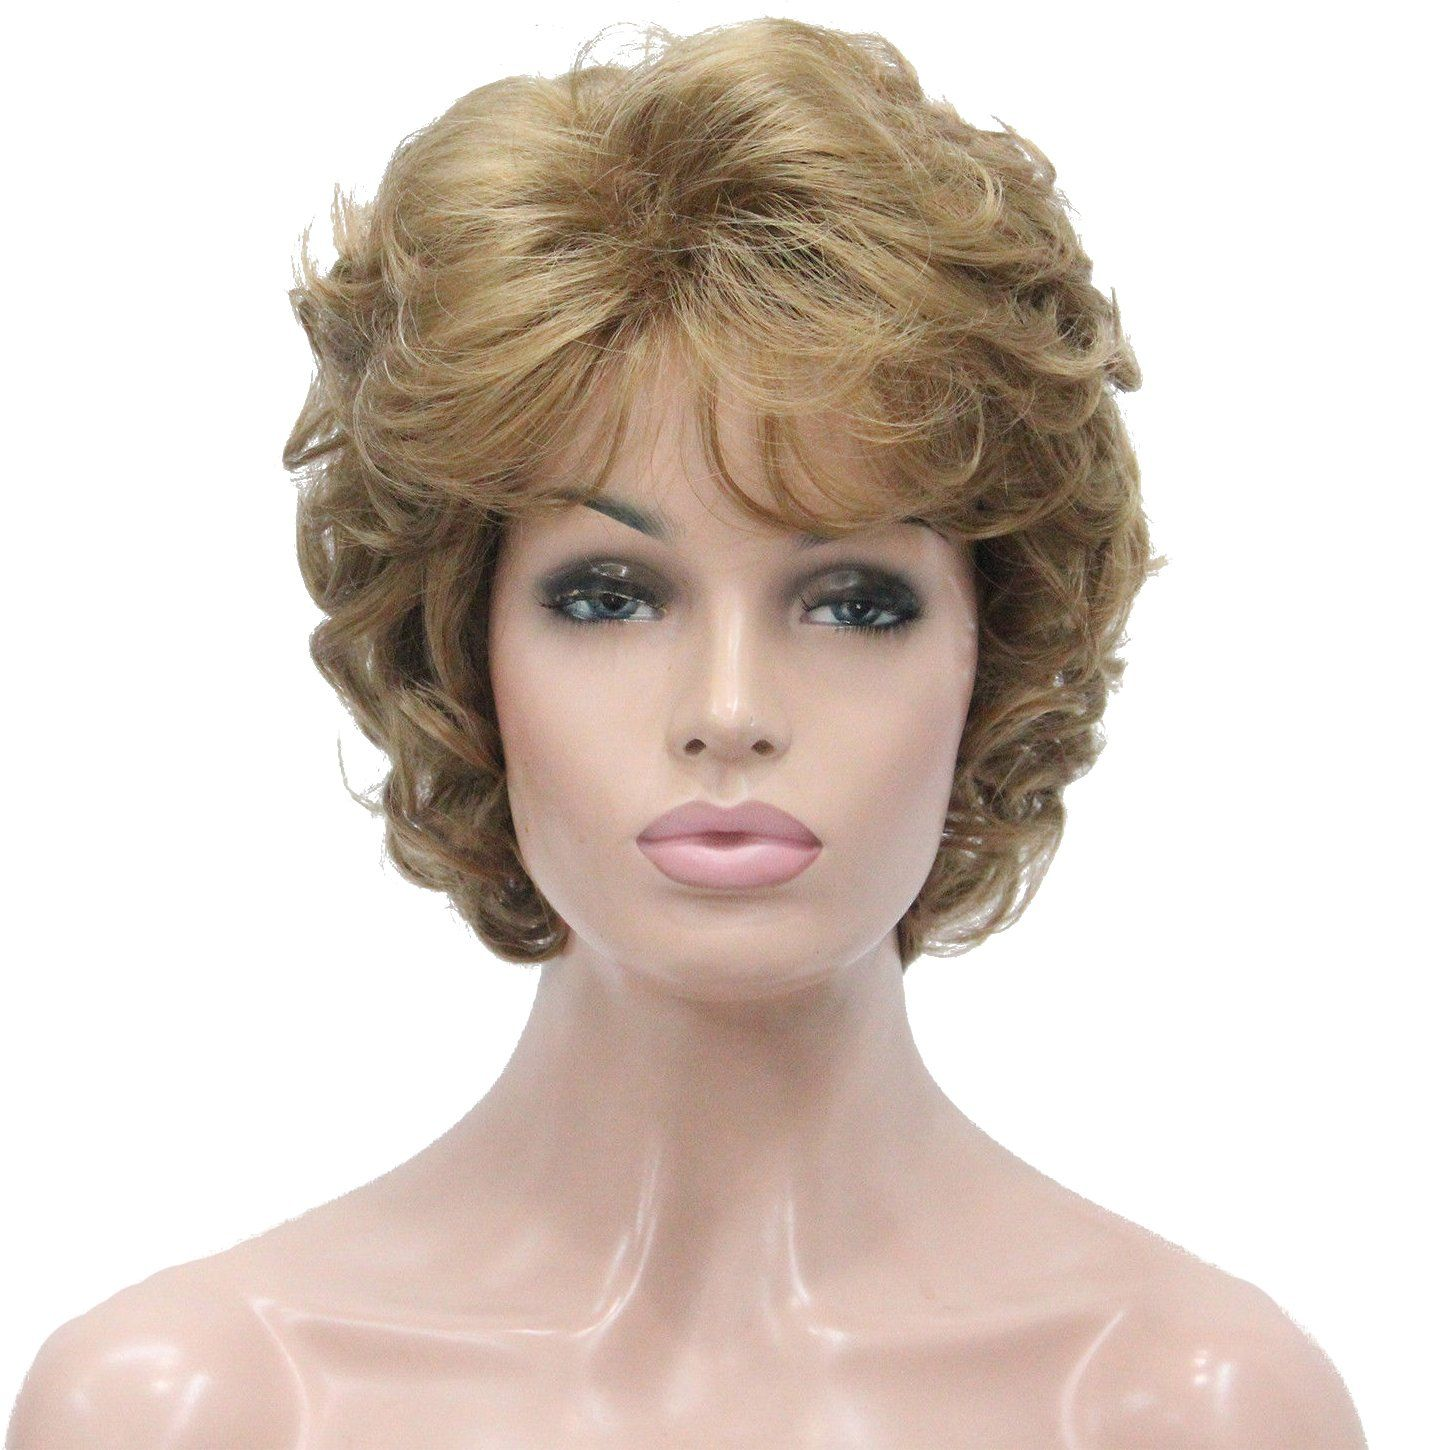 Lydell Women's Short Curly Wavy Wig Synthetic Hair Full